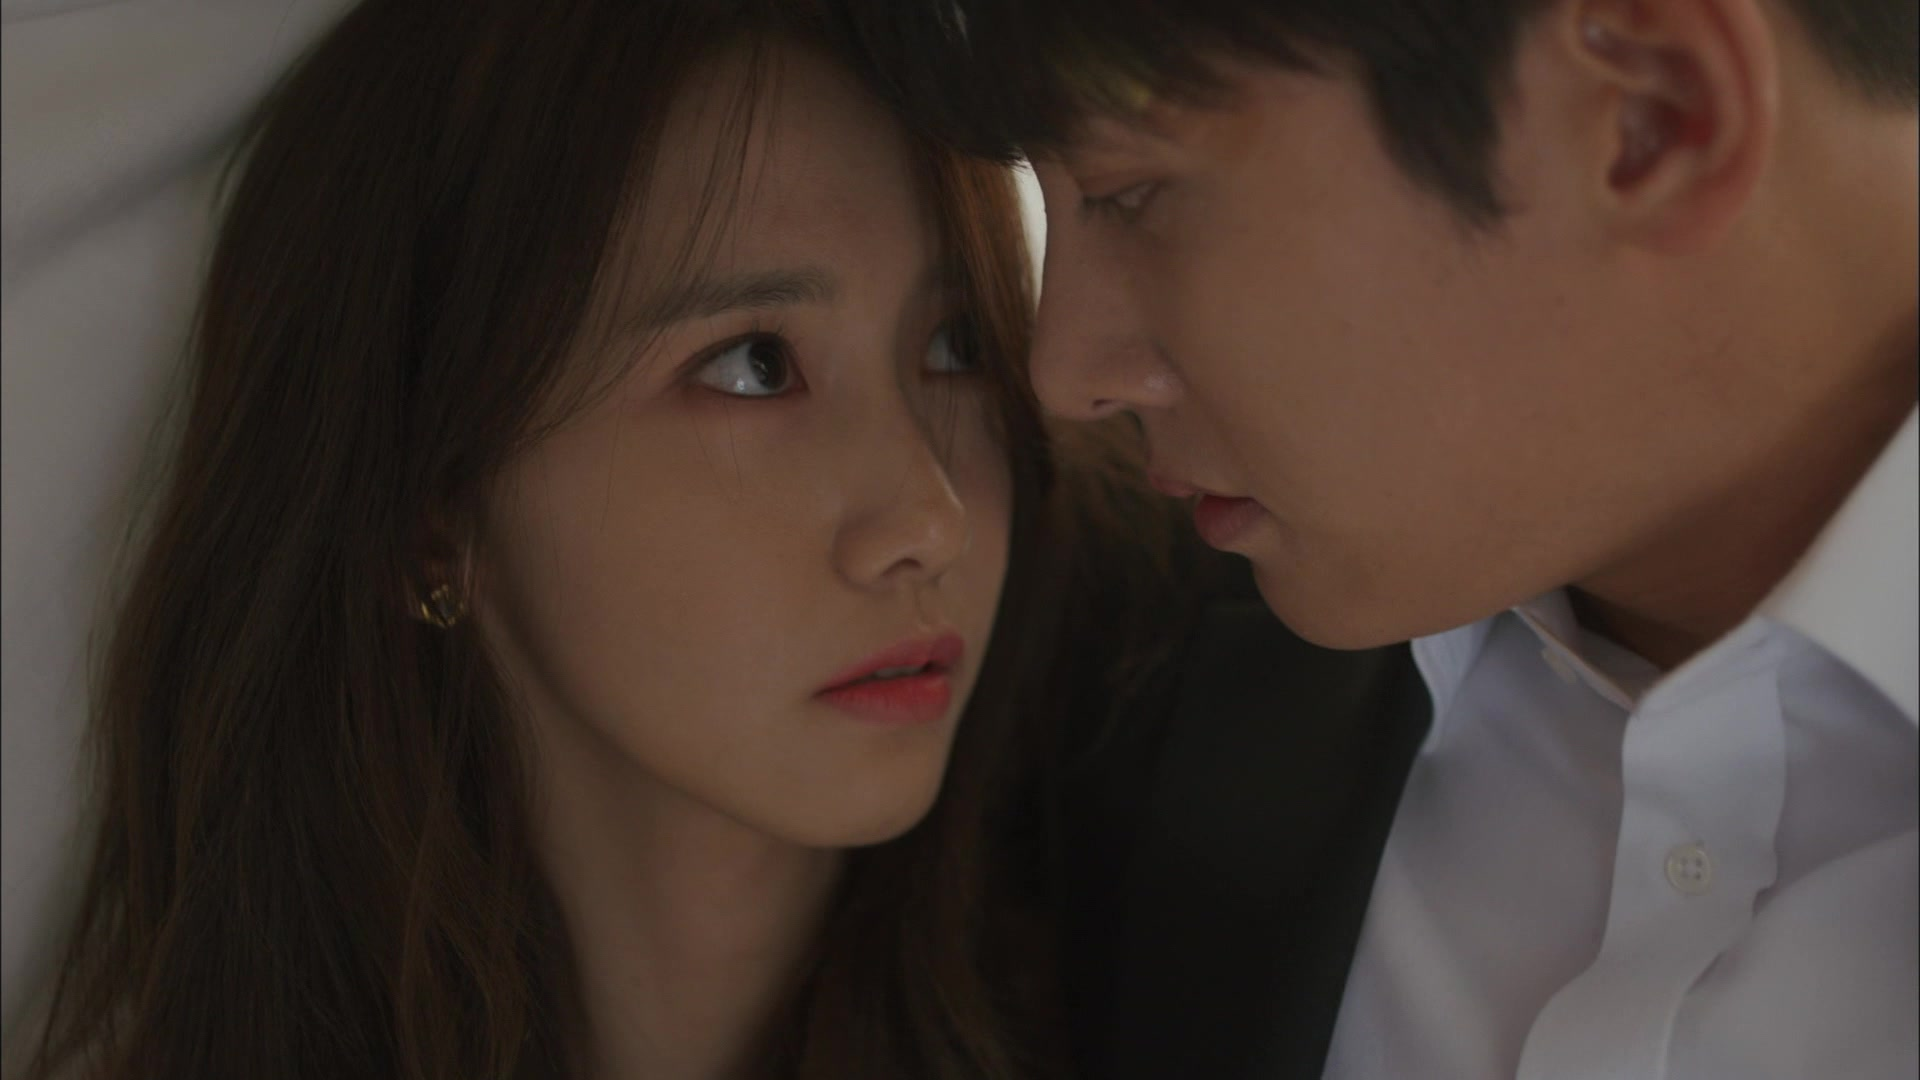 The K2 Episode 10